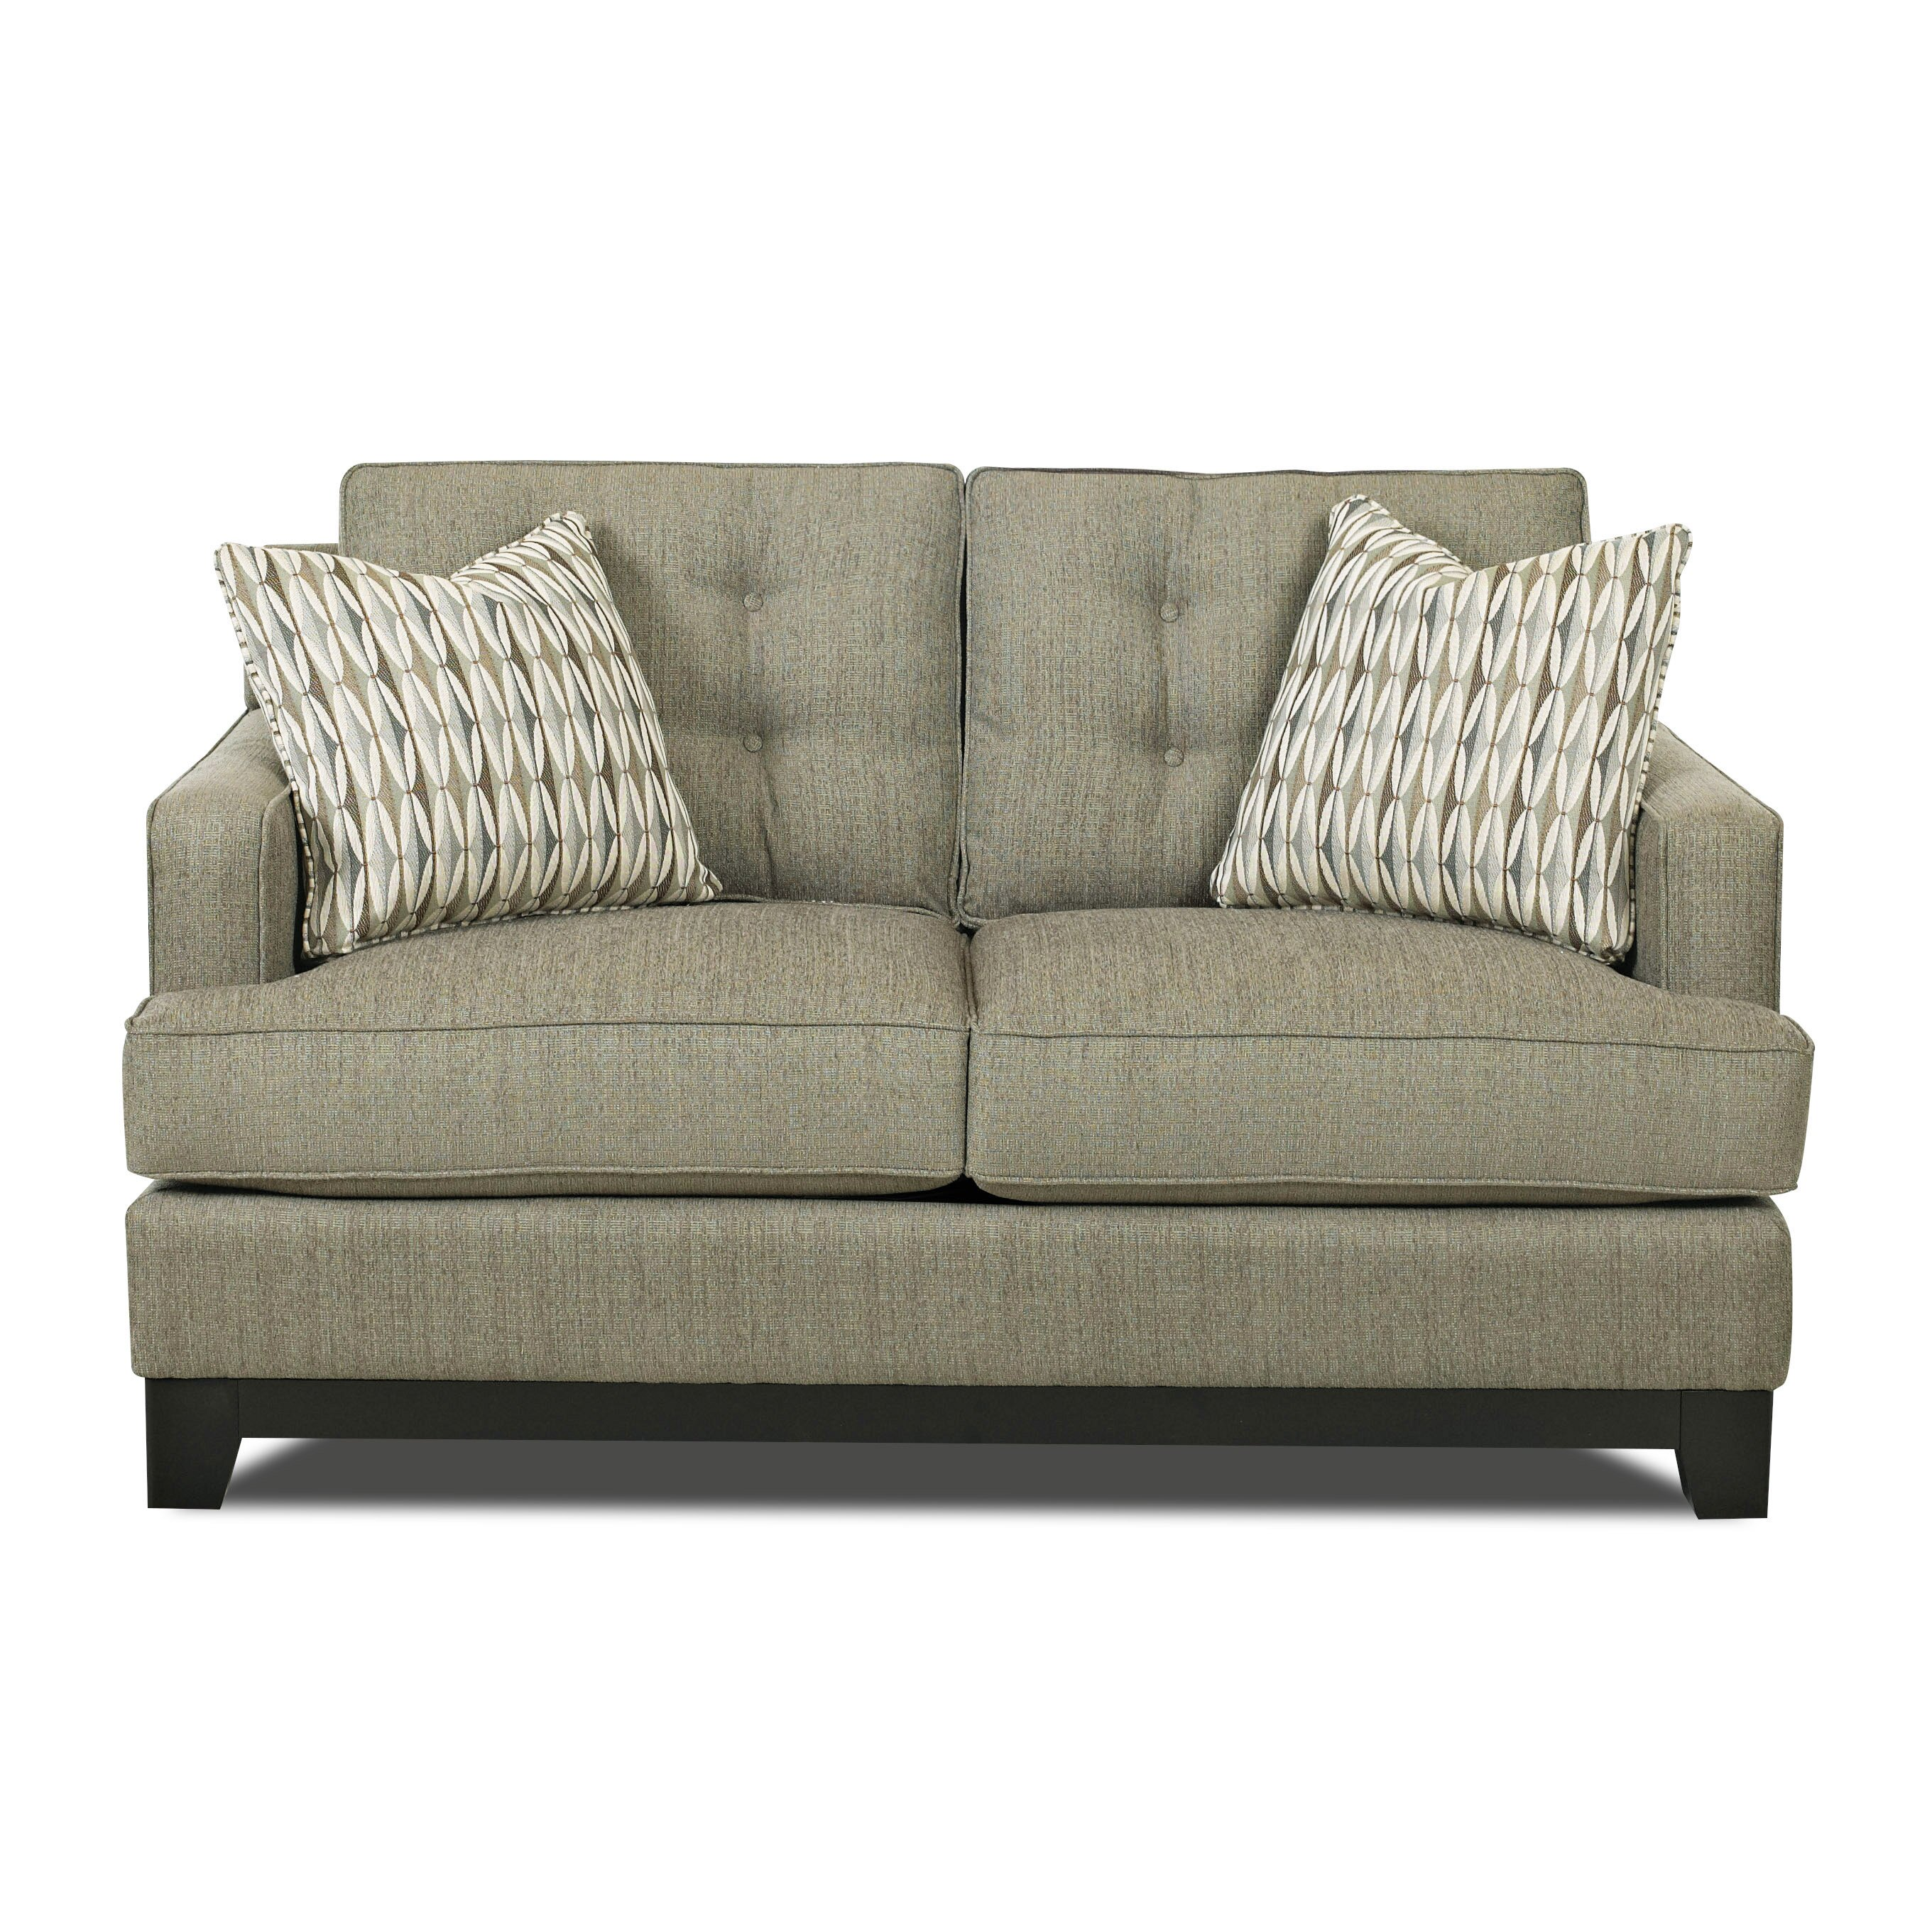 Klaussner Furniture Akers Loveseat Wayfair